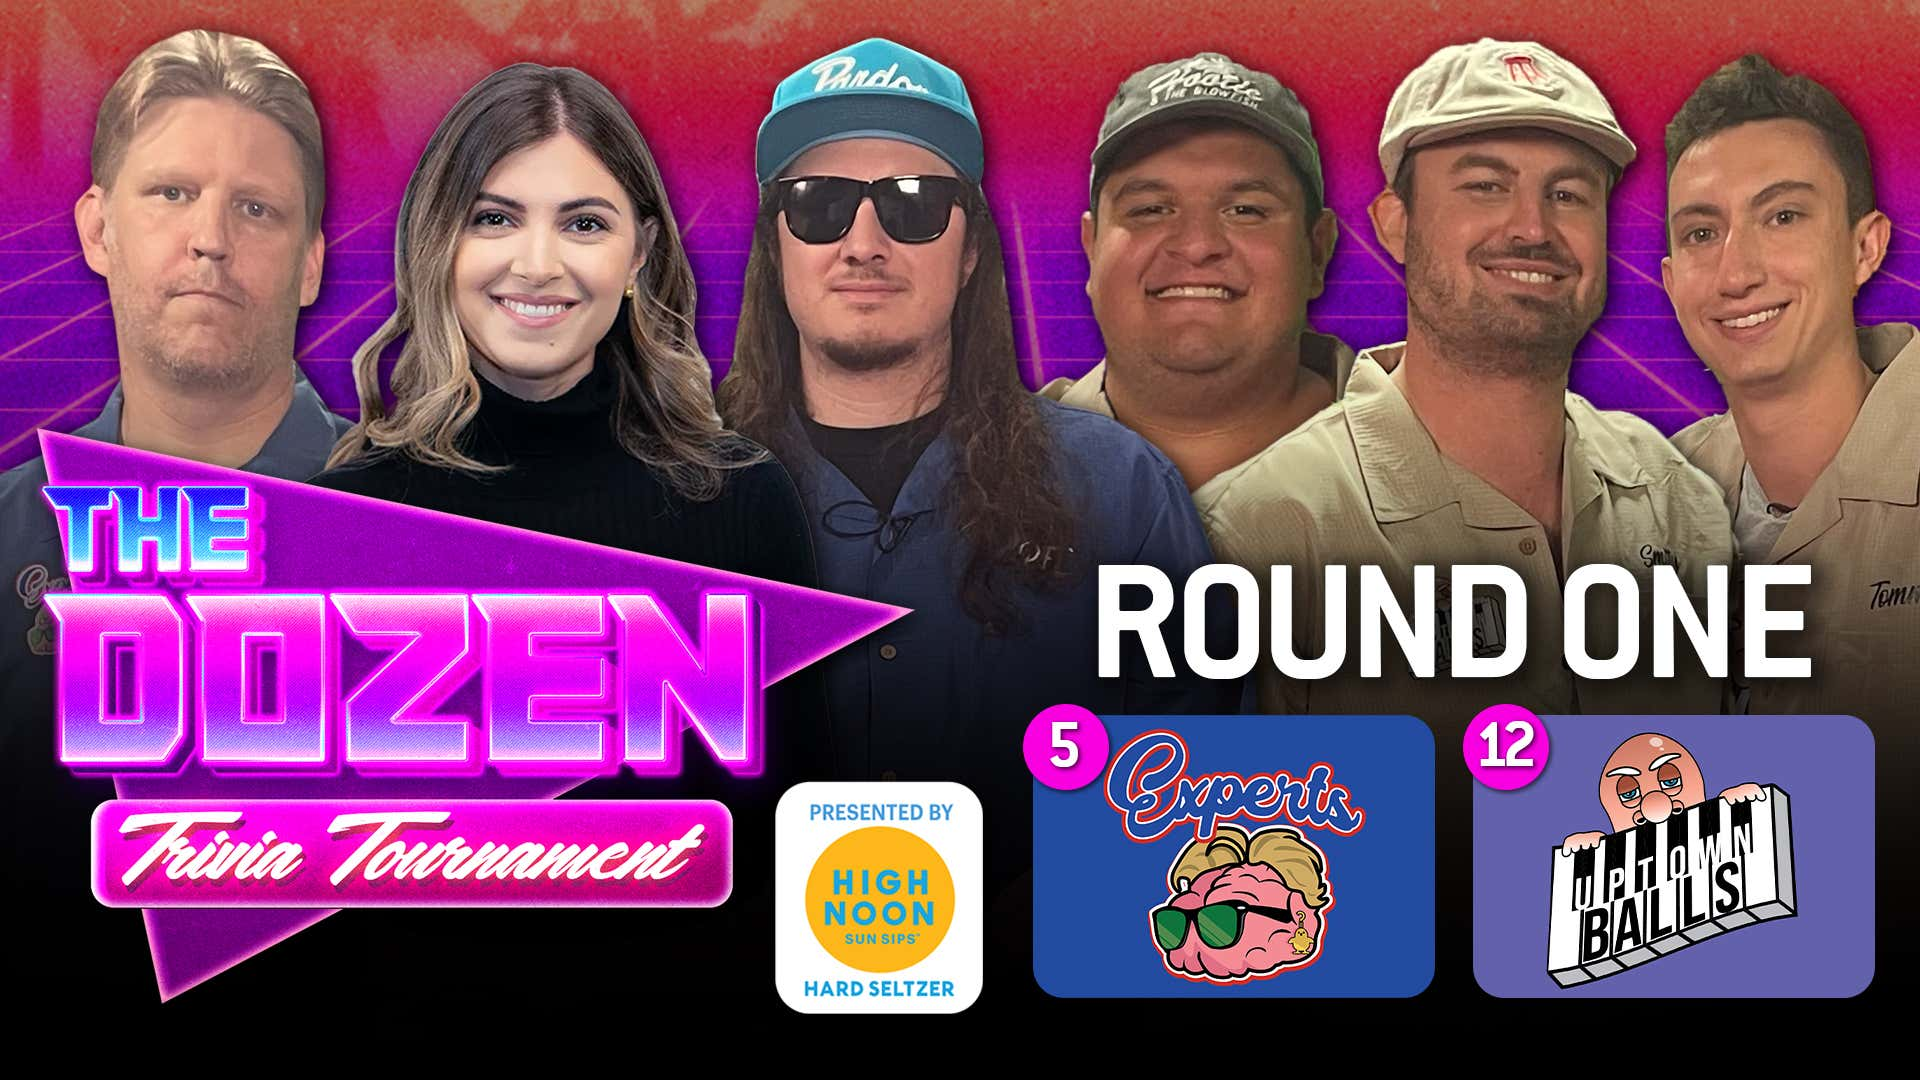 The Experts vs. Uptown Balls (The Dozen: Trivia Tournament pres. by High Noon Round 1, Match 4)